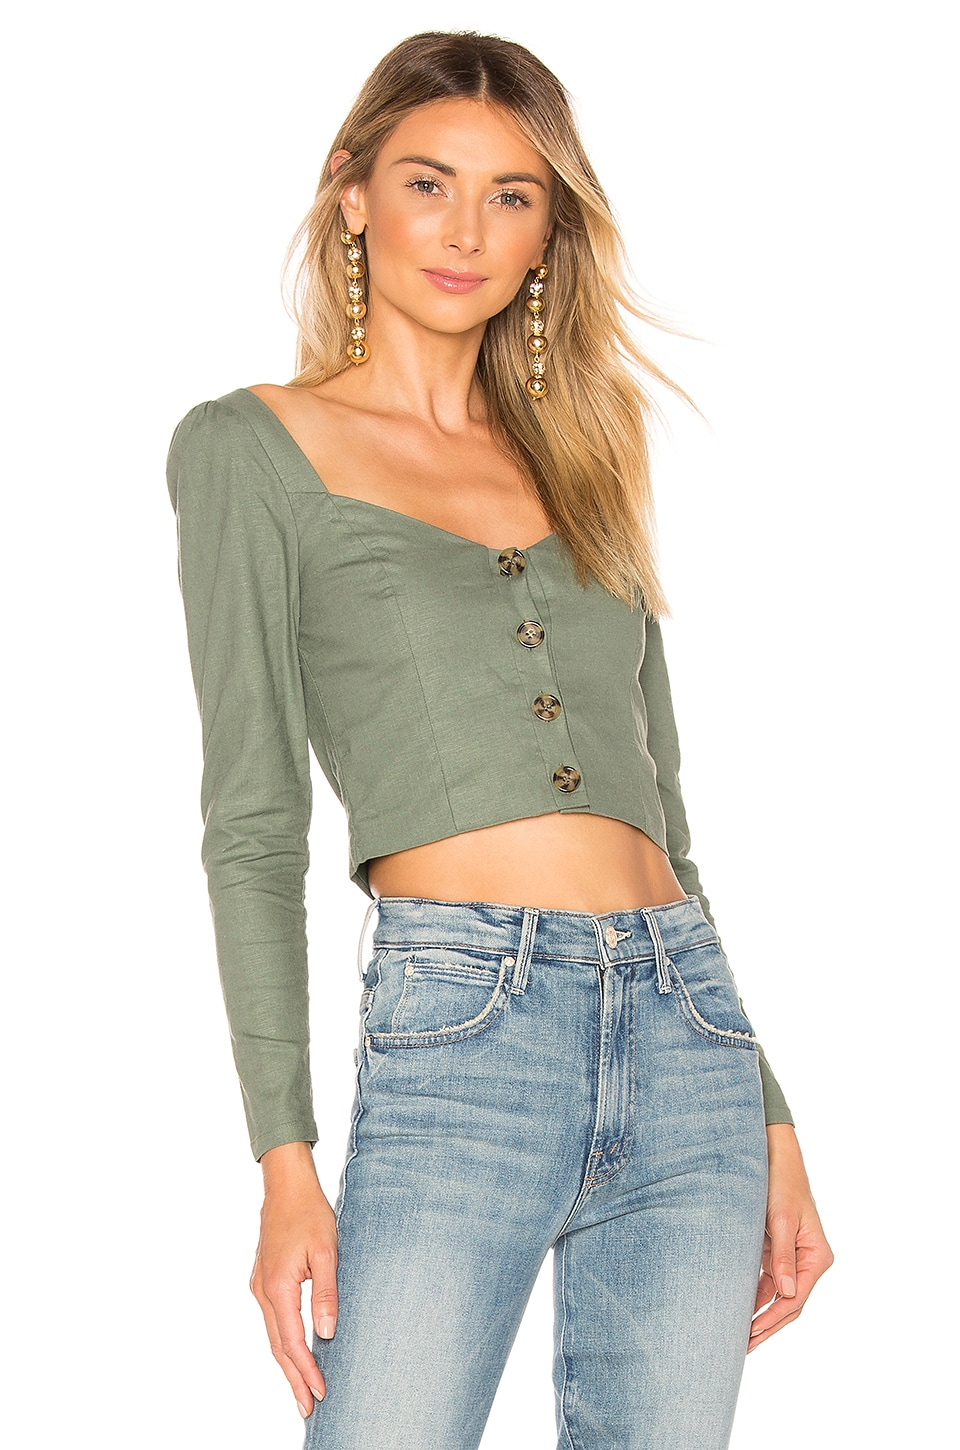 Privacy Please Althea Top in Sage Green